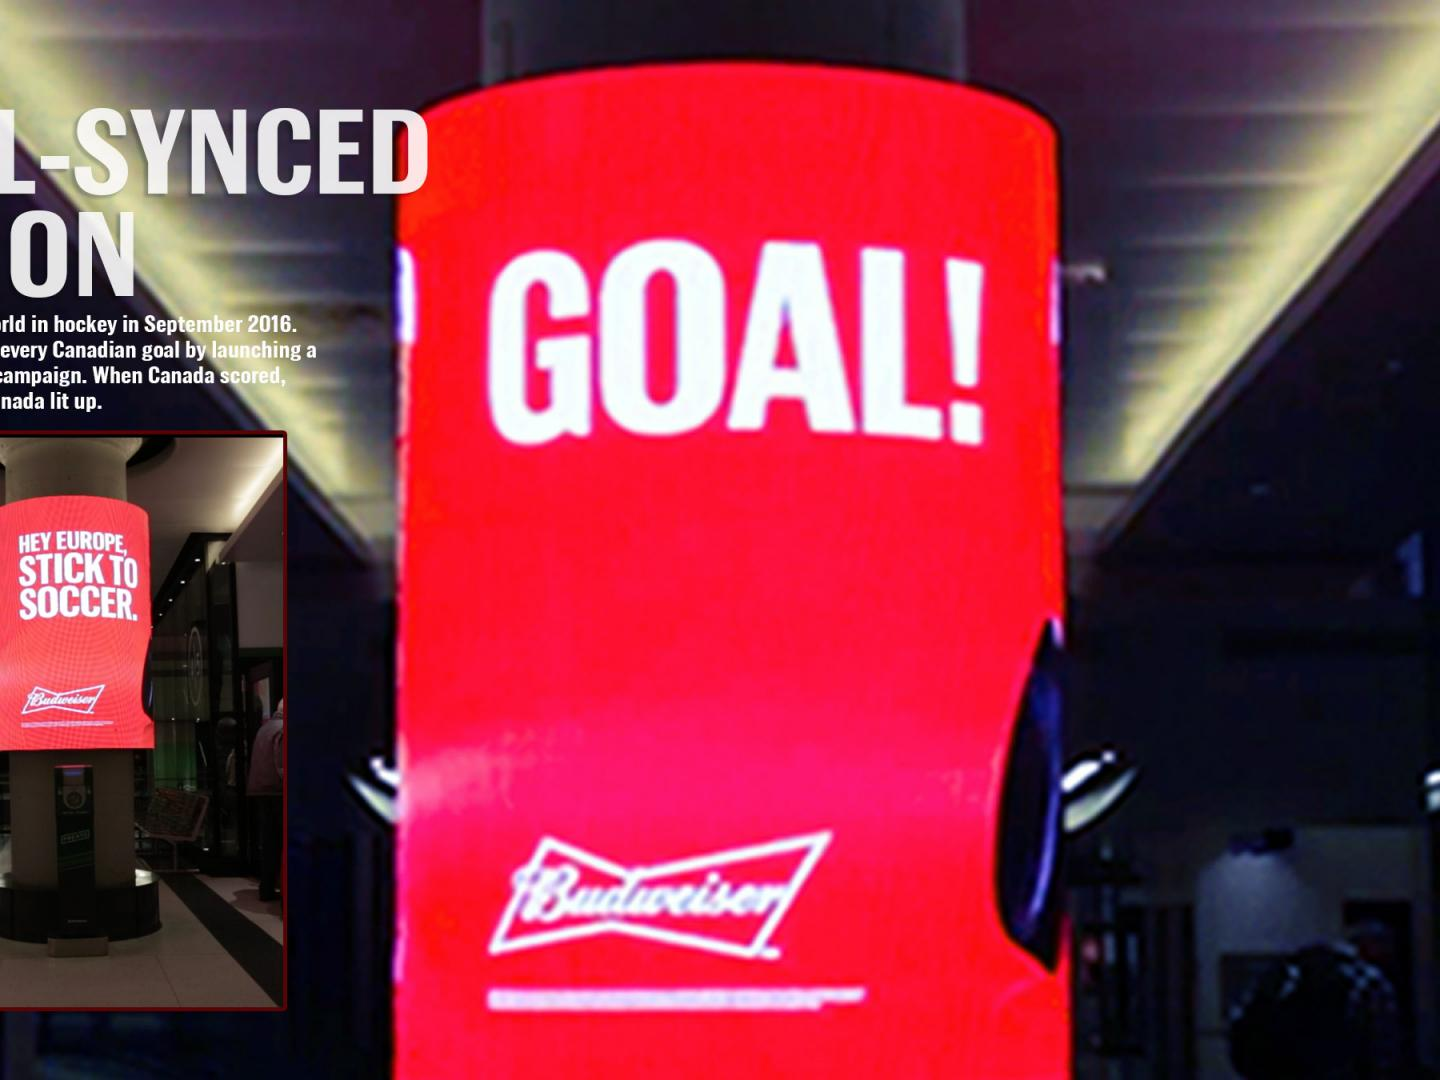 Budweiser Goal-Synced Nation Thumbnail